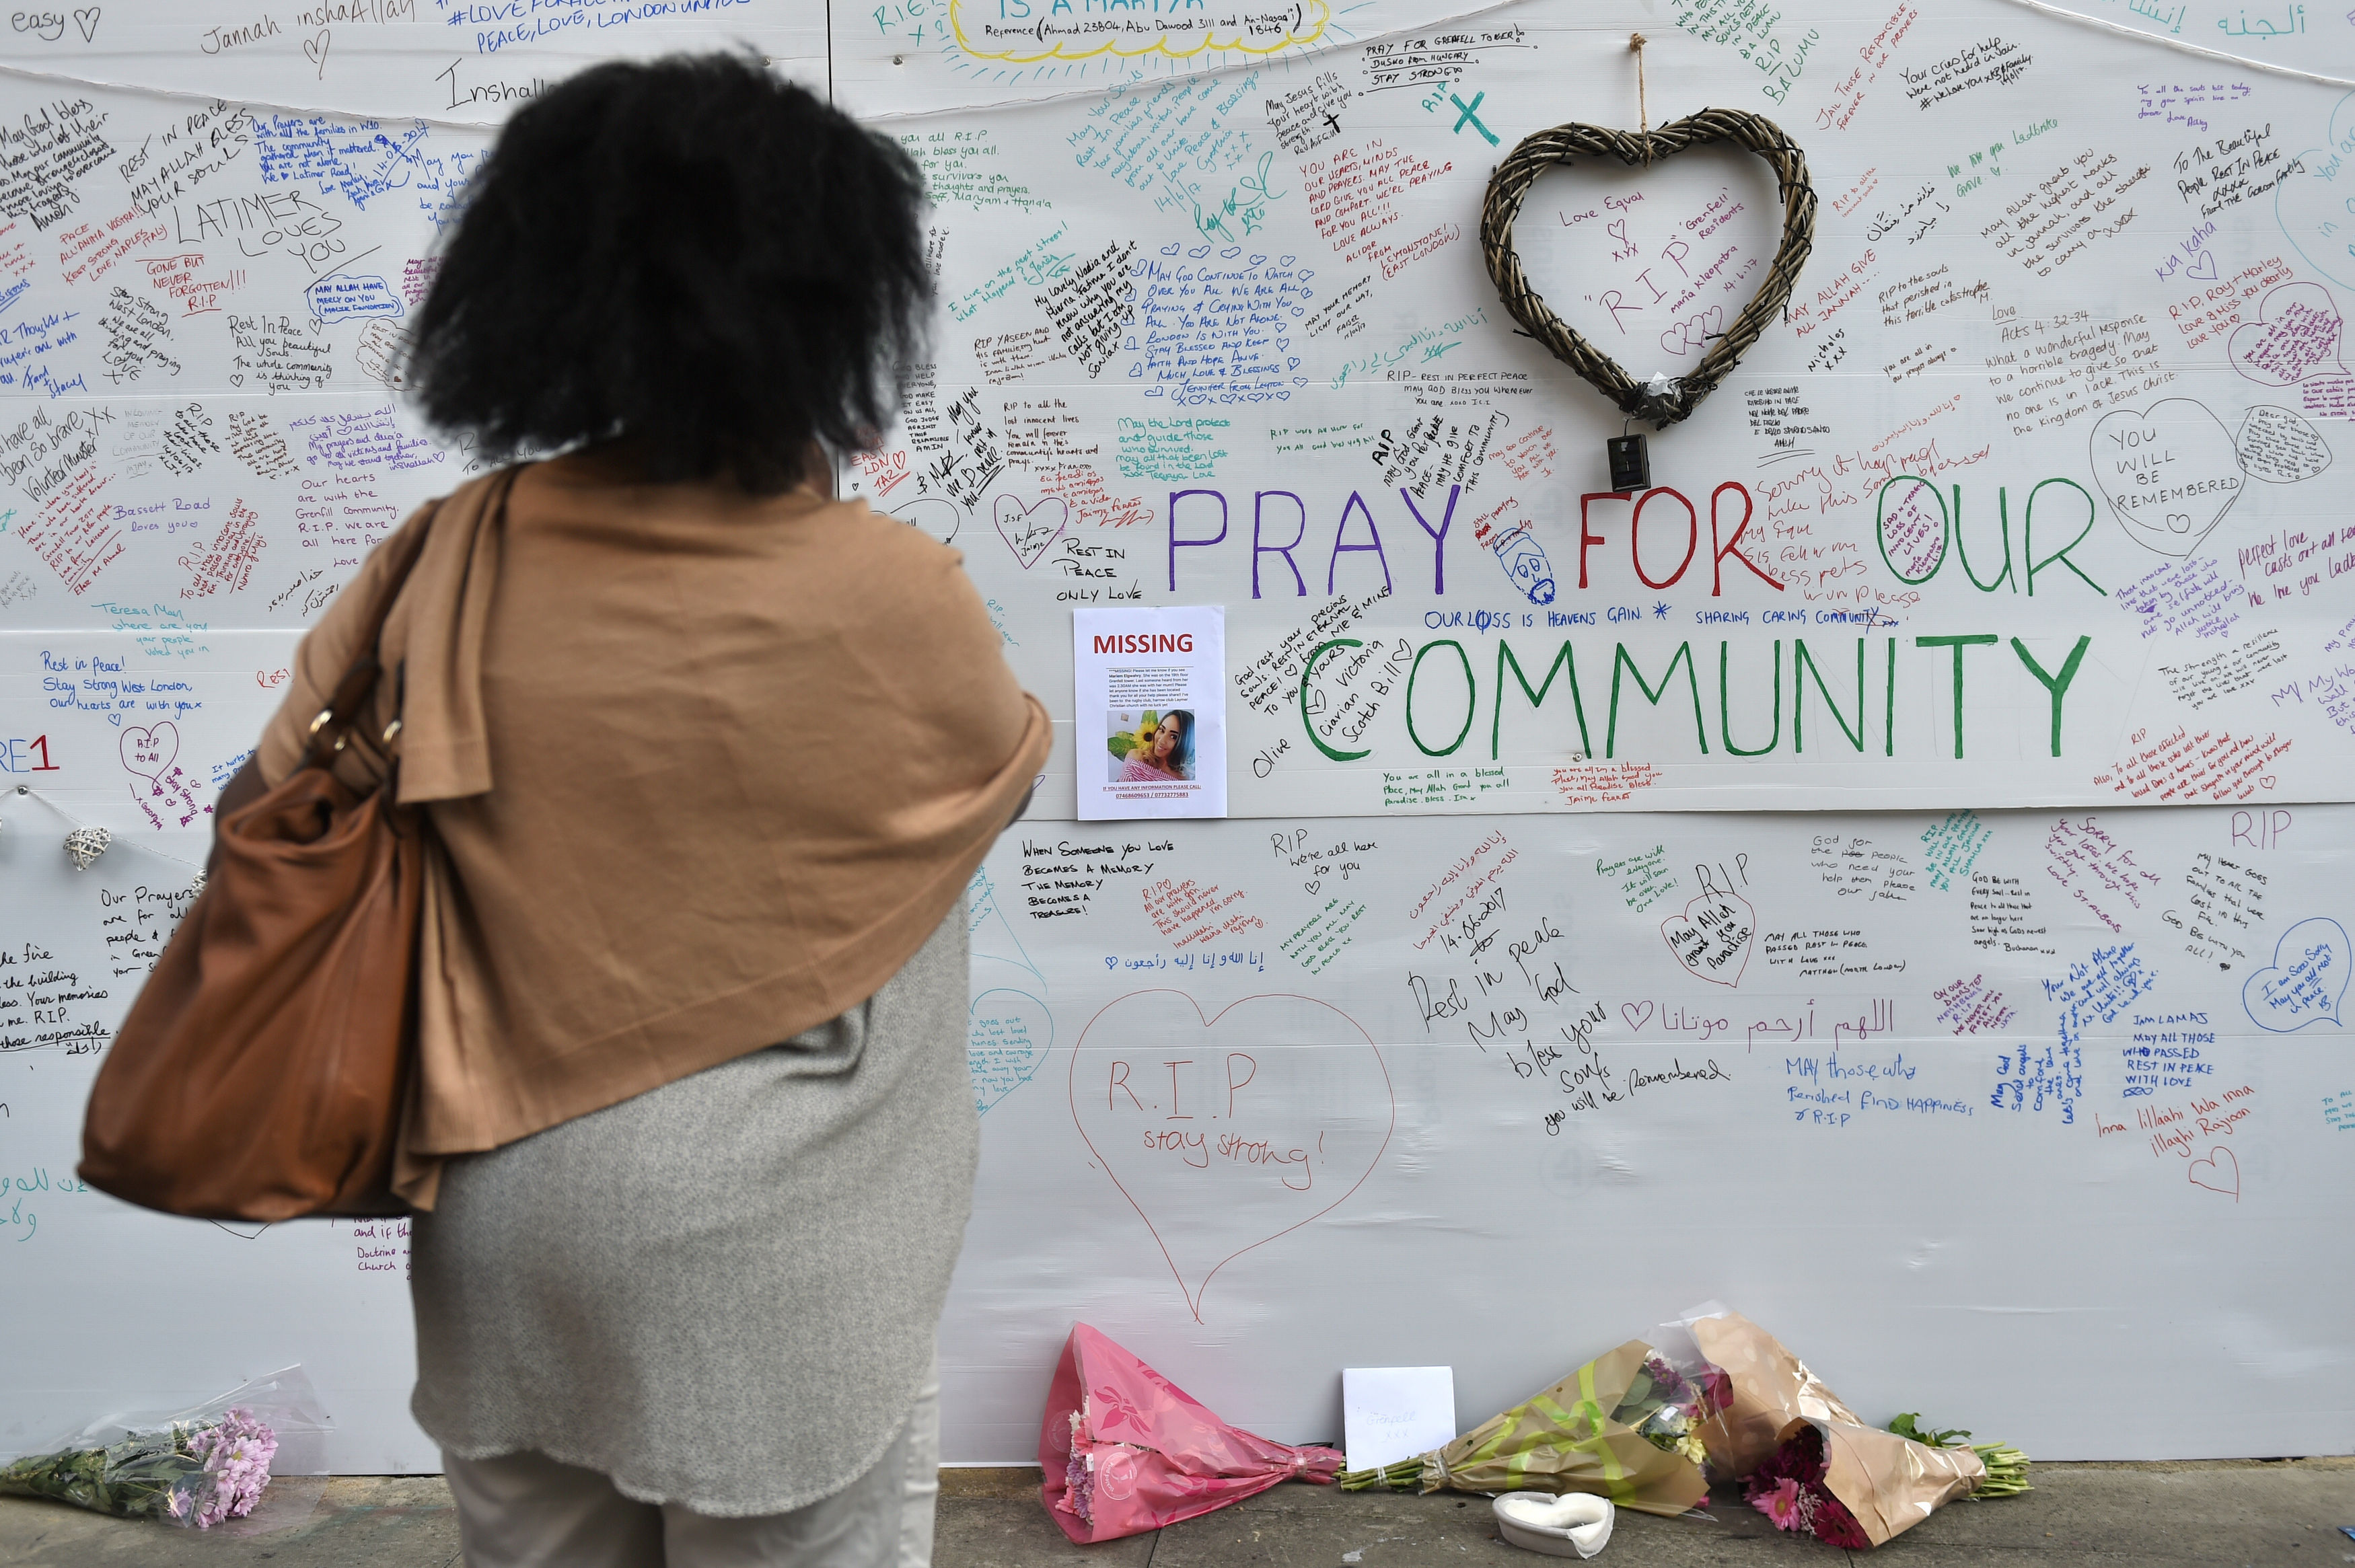 People write messages about Grenfell Tower